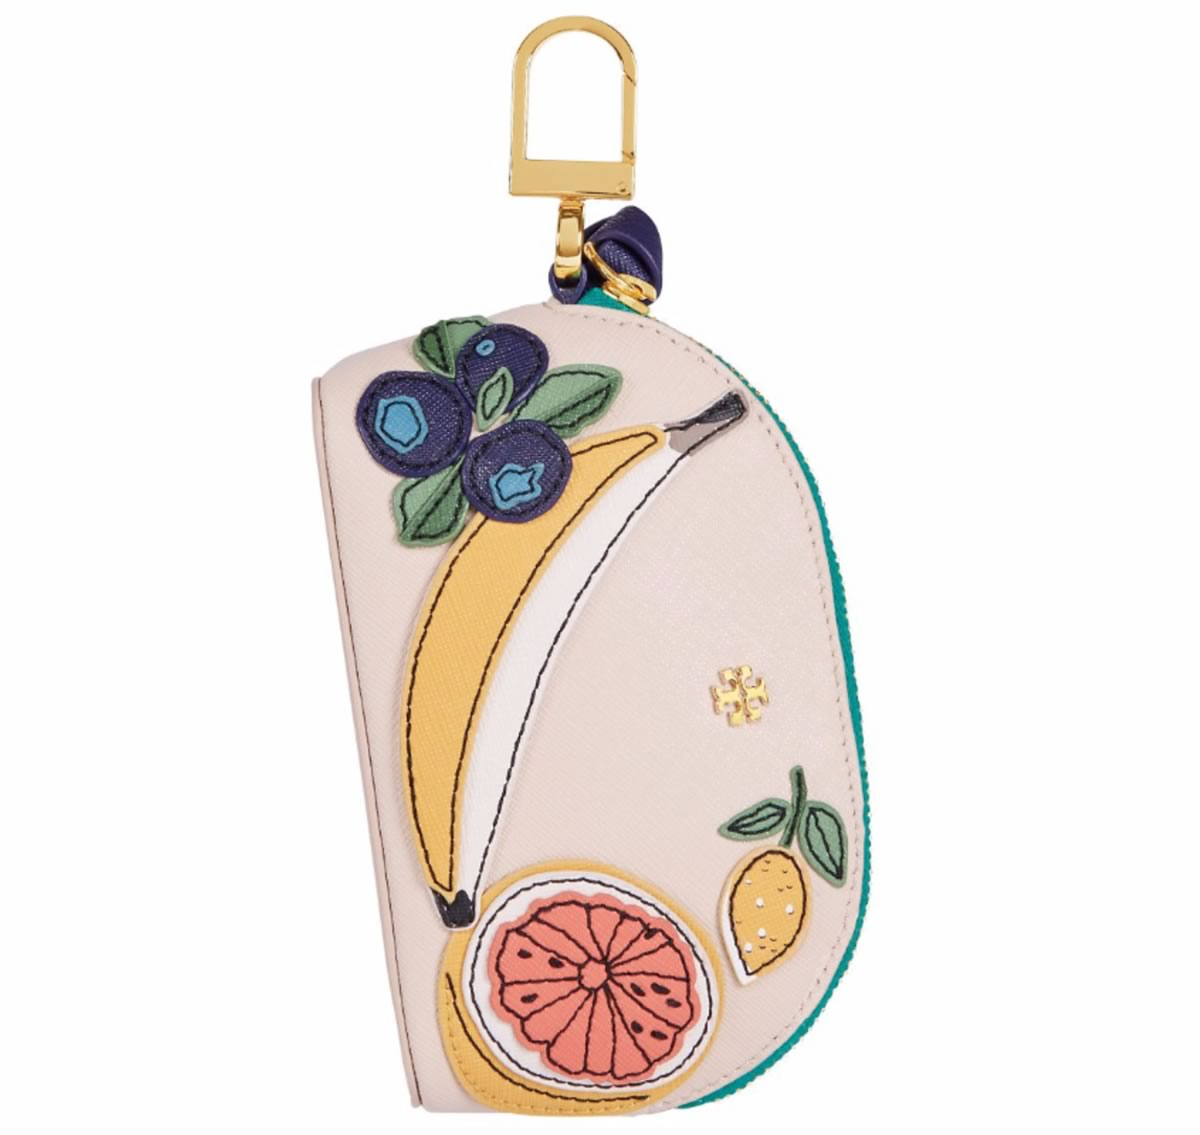 Tory Burch Domed Fruit Pouch Key Fob